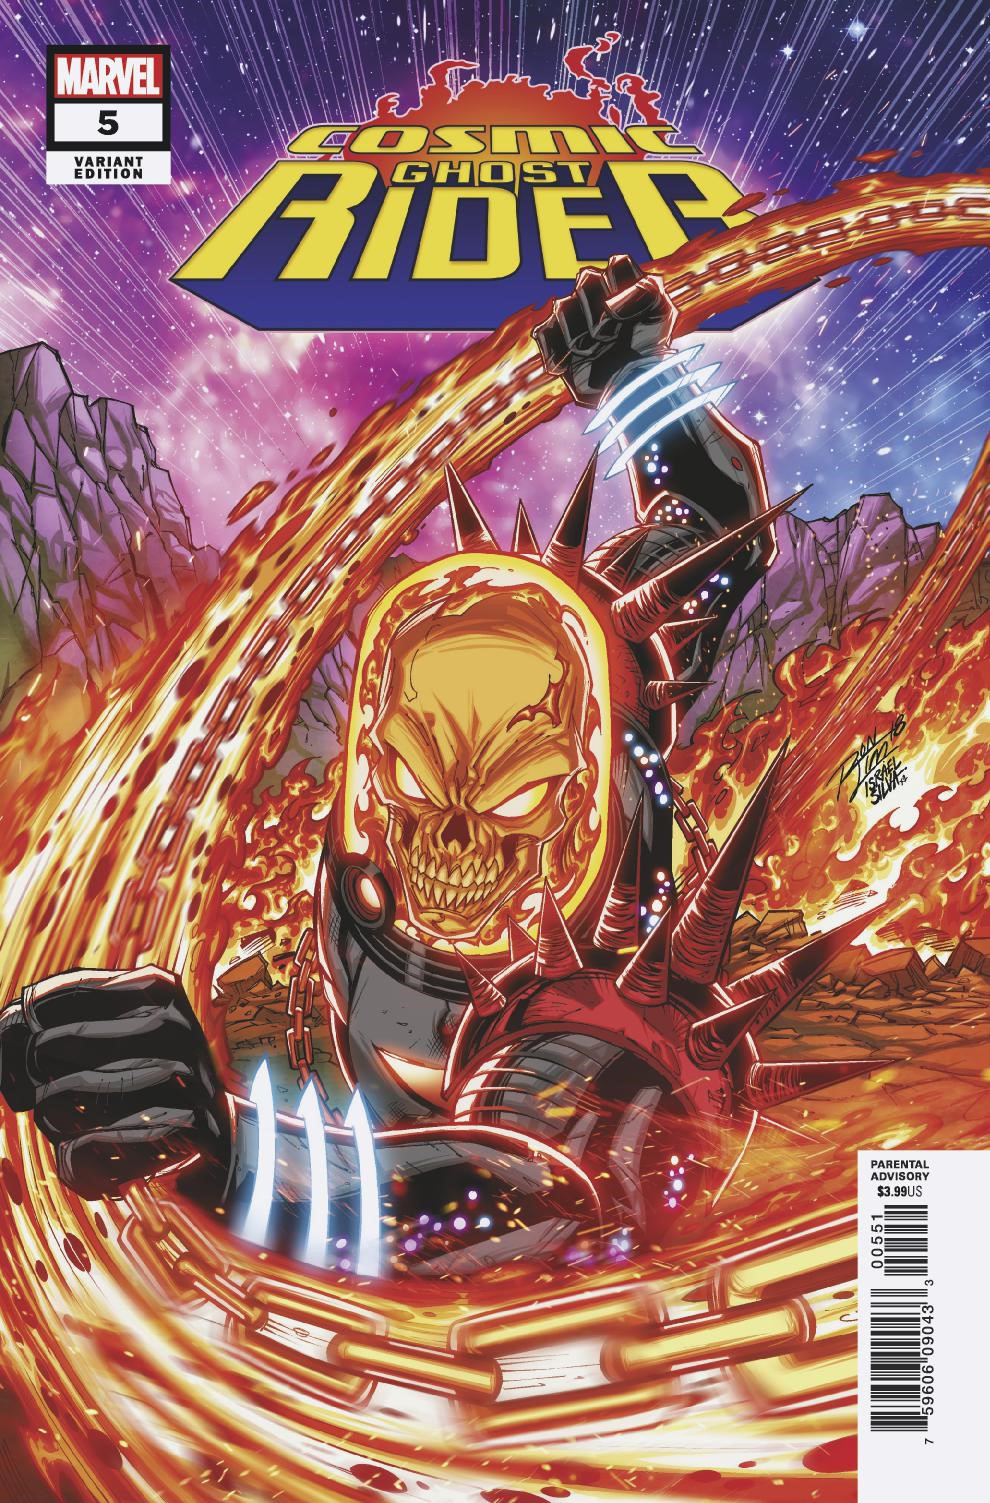 COSMIC GHOST RIDER #5 (OF 5) LIM VAR